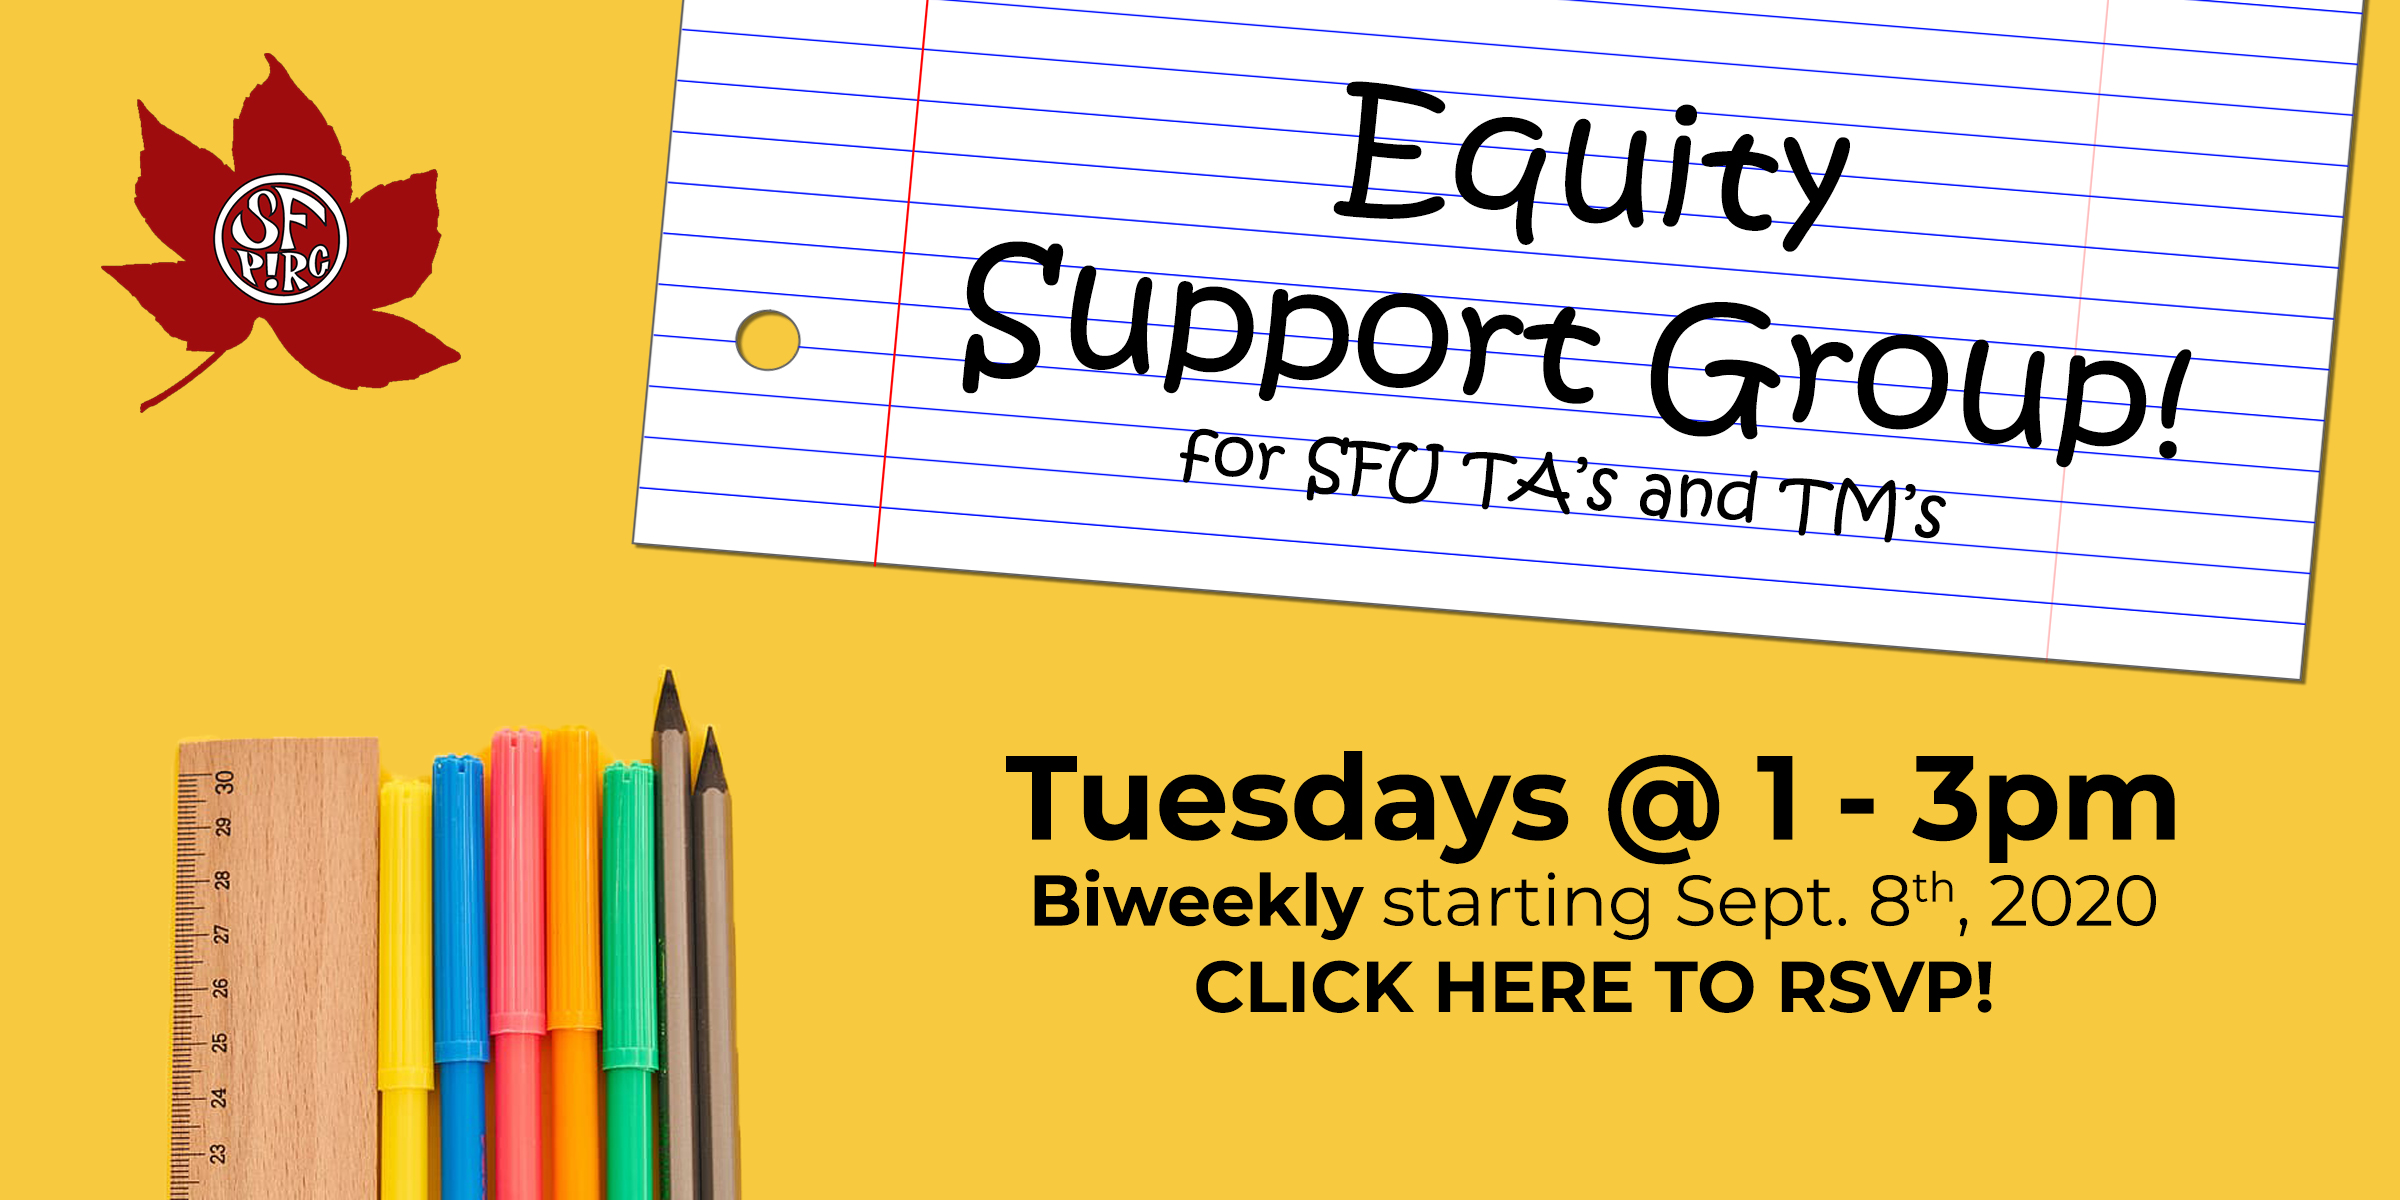 Equity Support Group for SFU TAs and TMs! Tuesdays 1-3pm, biweekly starting Sept. 8th, 2020. Click here to RSVP!